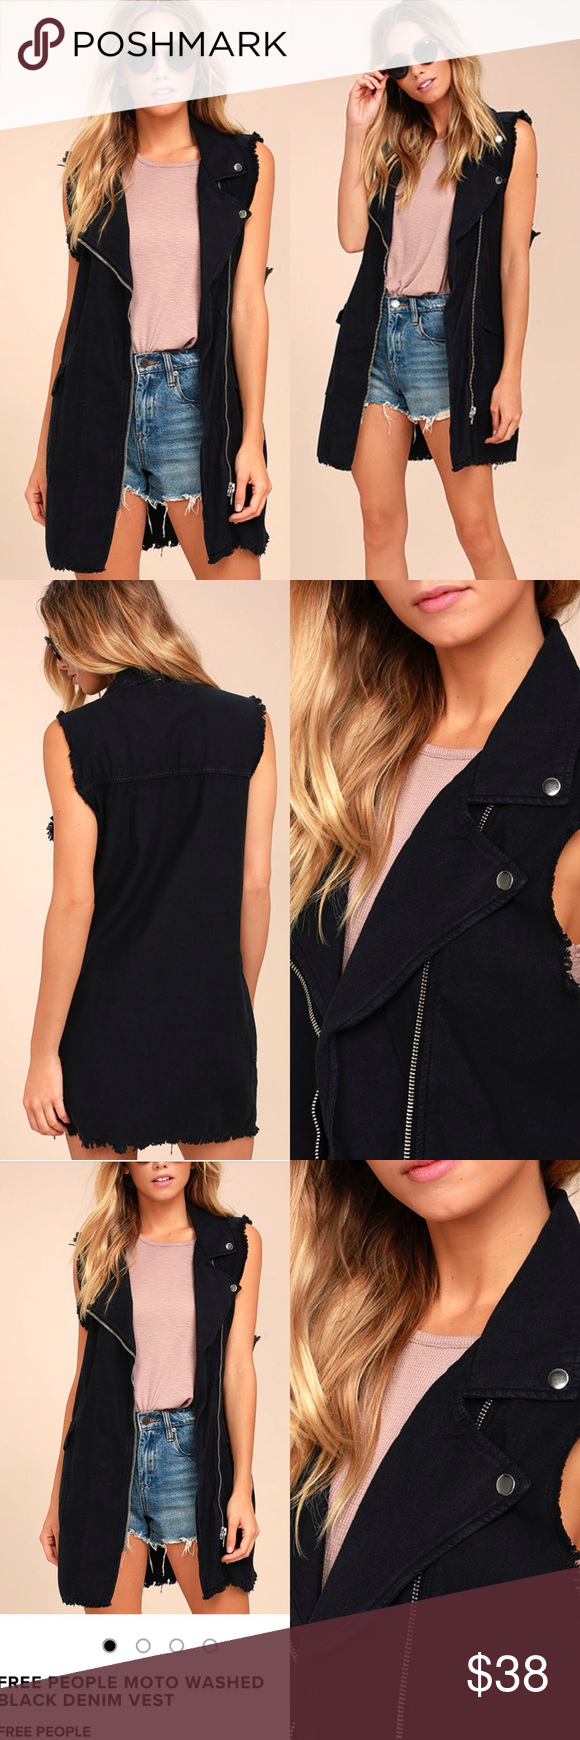 Free People Moto Washed Denim Vest The Free People Moto Washed Black Denim Vest adds edgy appeal to any ensemble! Woven cotton forms this moto-style vest with a longline silhouette. Notched collar, front zip closure, flap pockets, and frayed, back-stitched hems complete the look. Unlined. 100% Cotton. Machine Wash Cold. Imported. Free People Jackets & Coats Vests